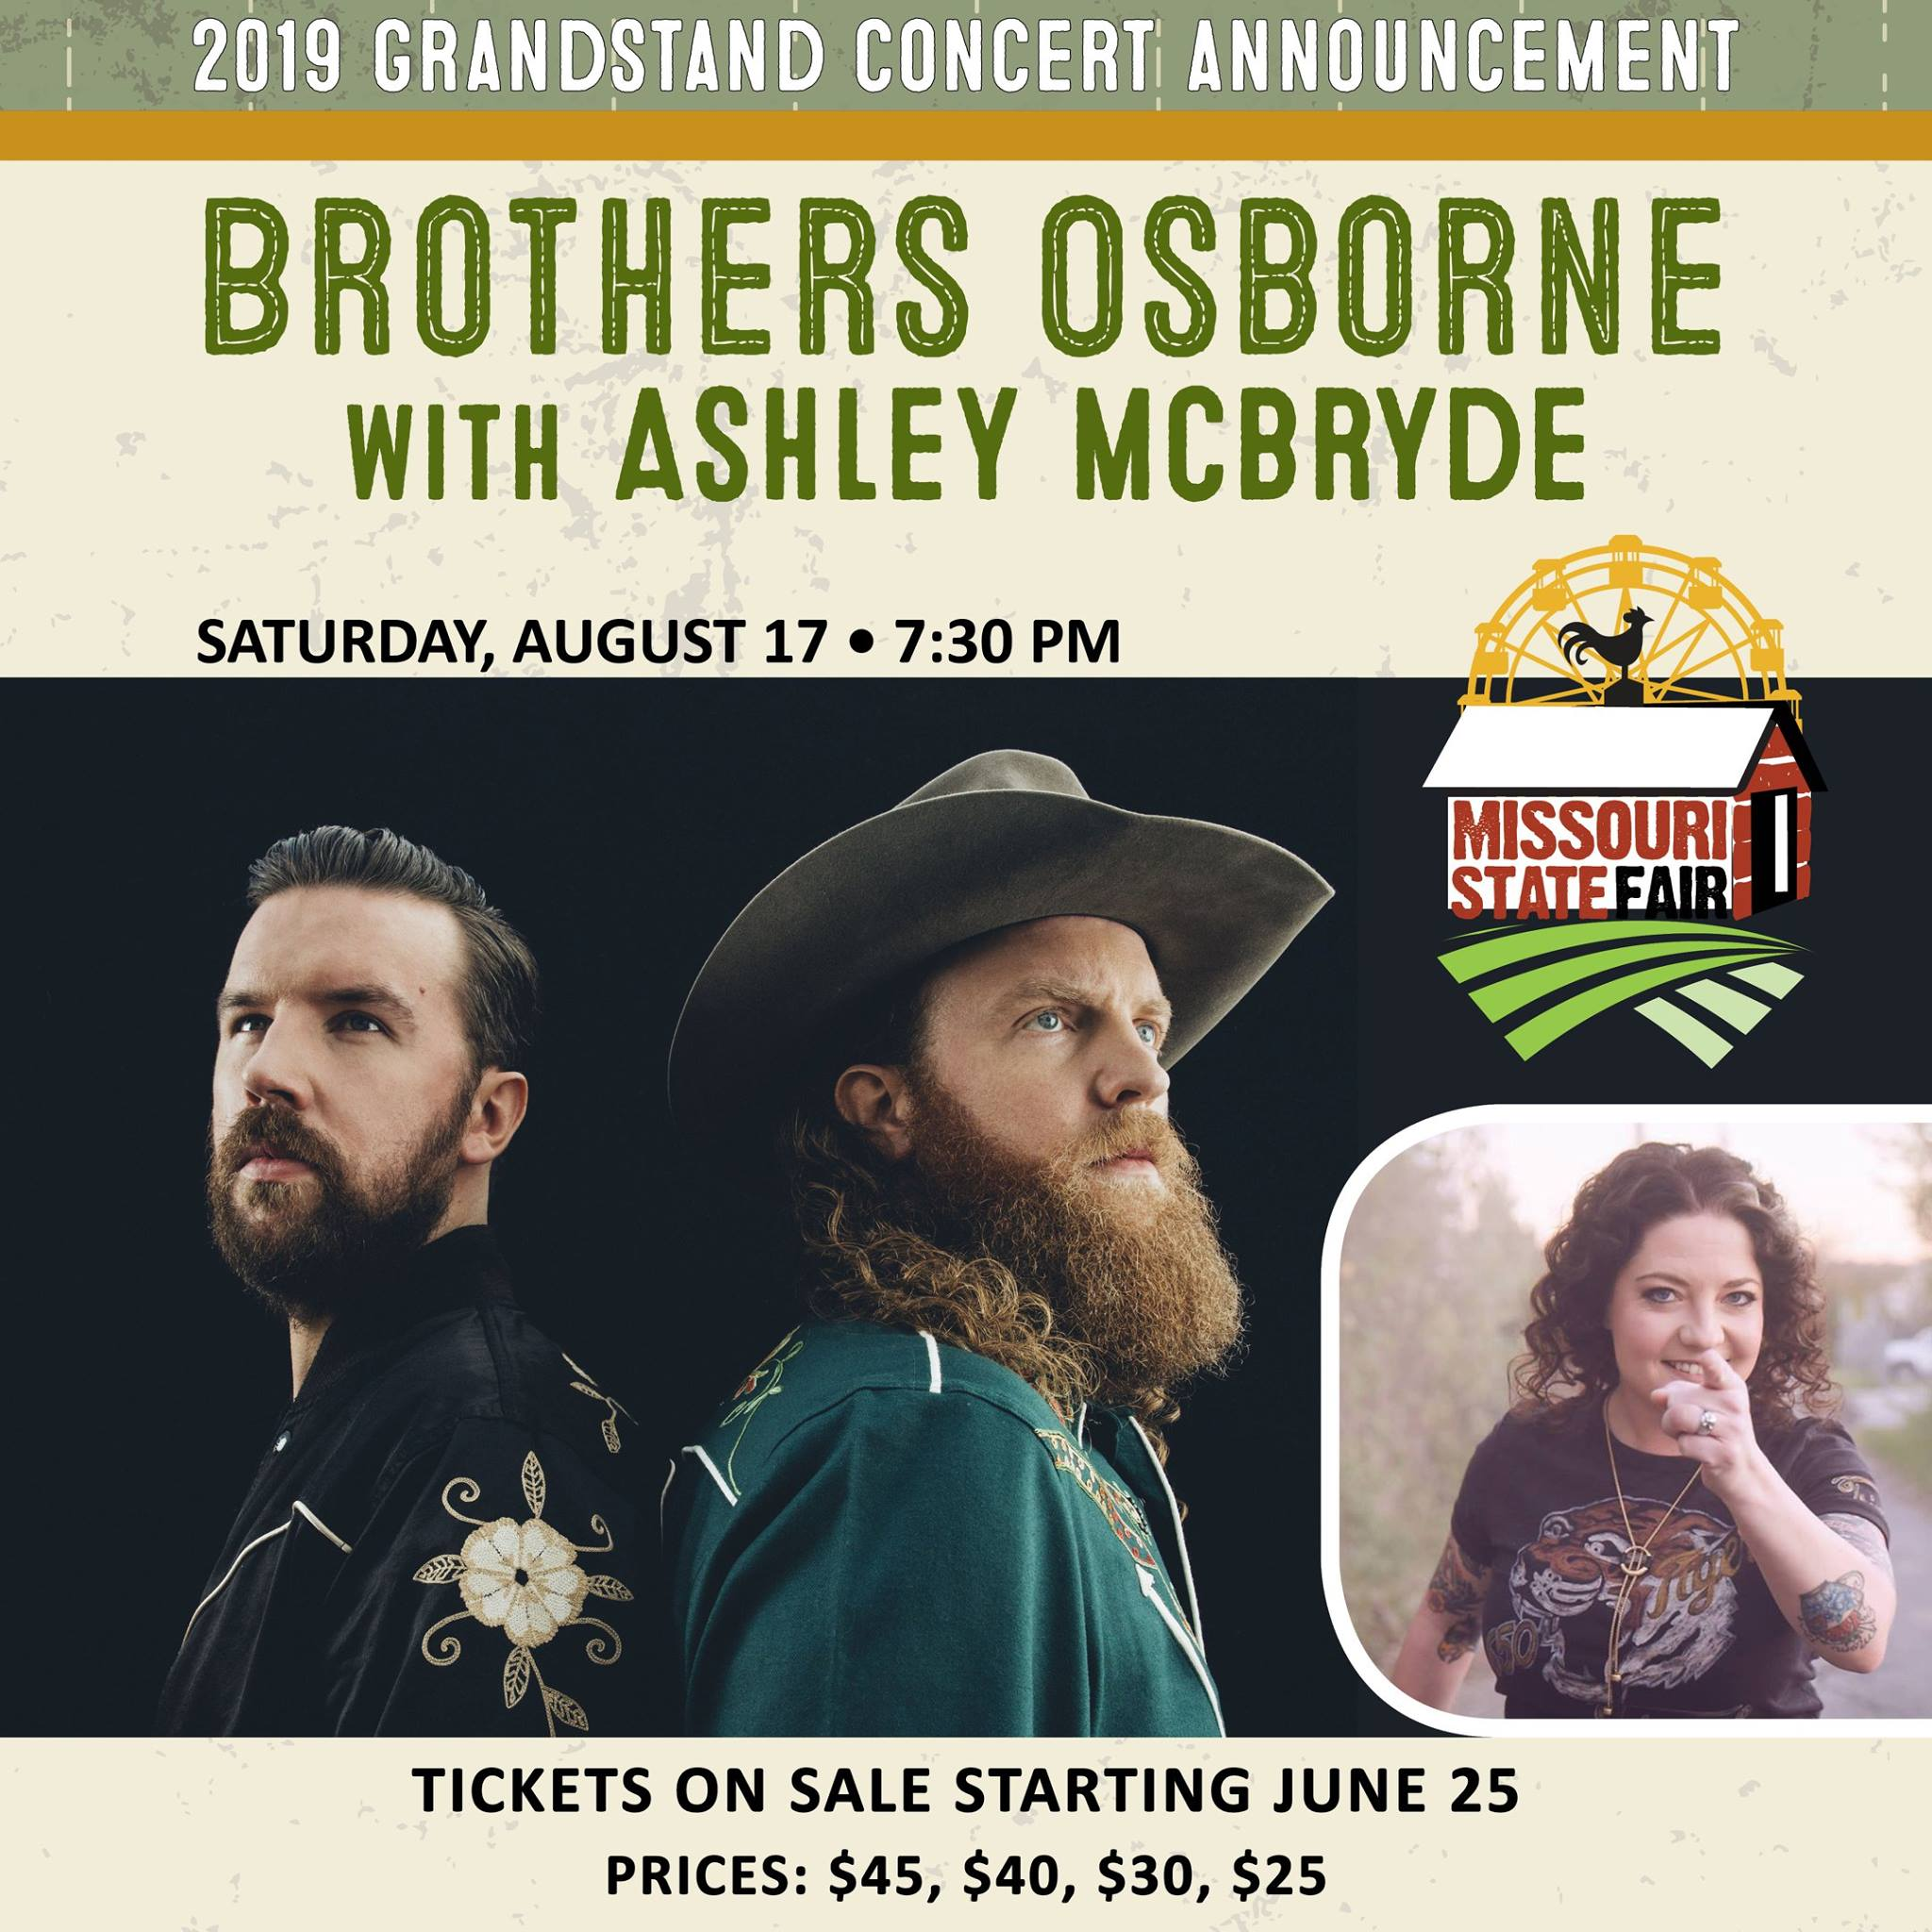 Brothers Osborne and Ashley McBryde coming to Missouri State Fair